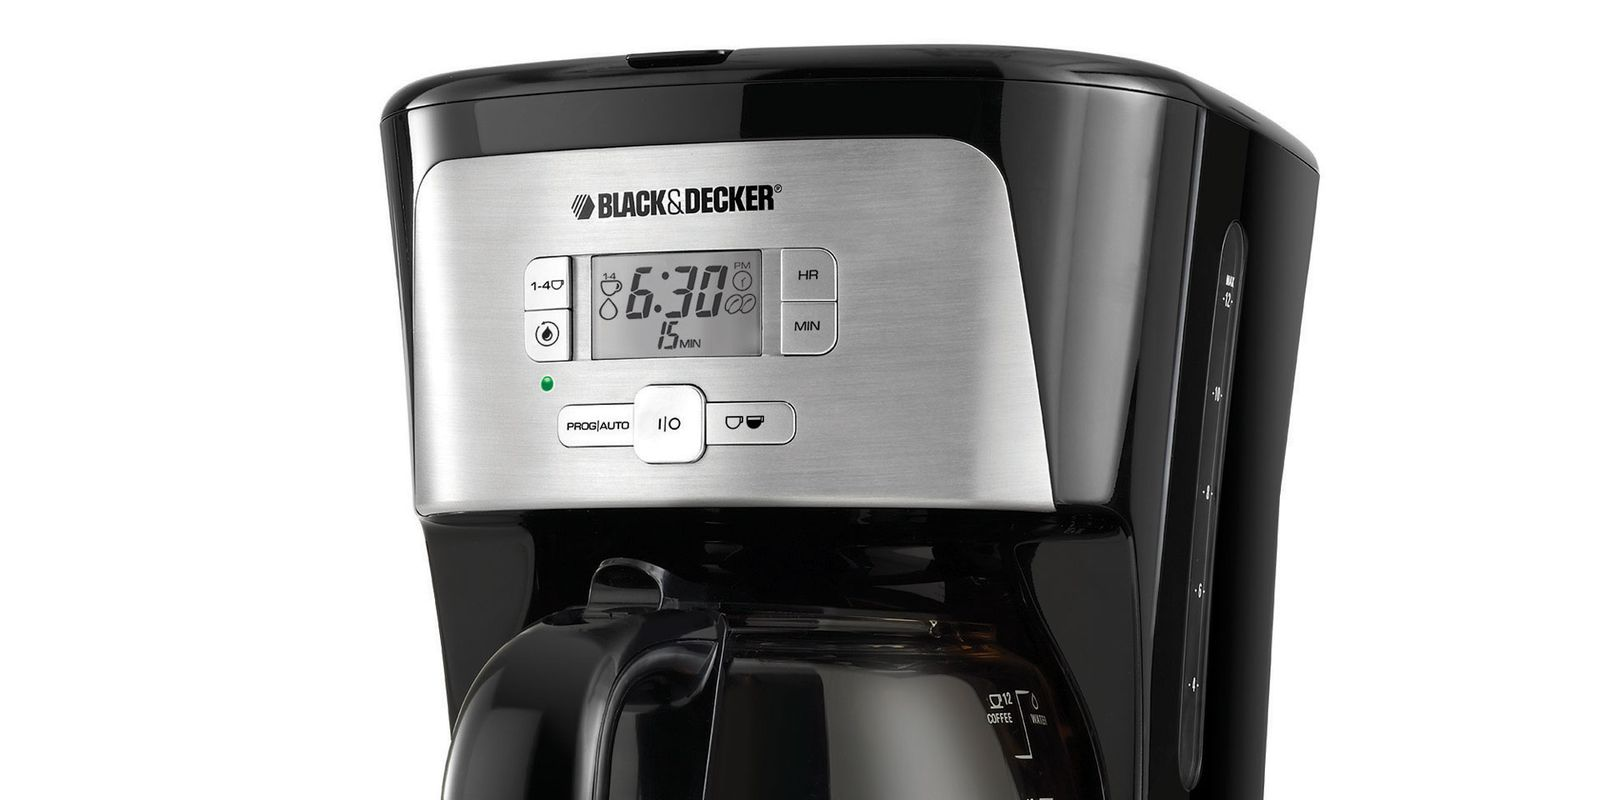 Black And Decker Coffee Maker Timer Instructions : Black & Decker 12-Cup Programmable Coffee Maker #CM2020B Review